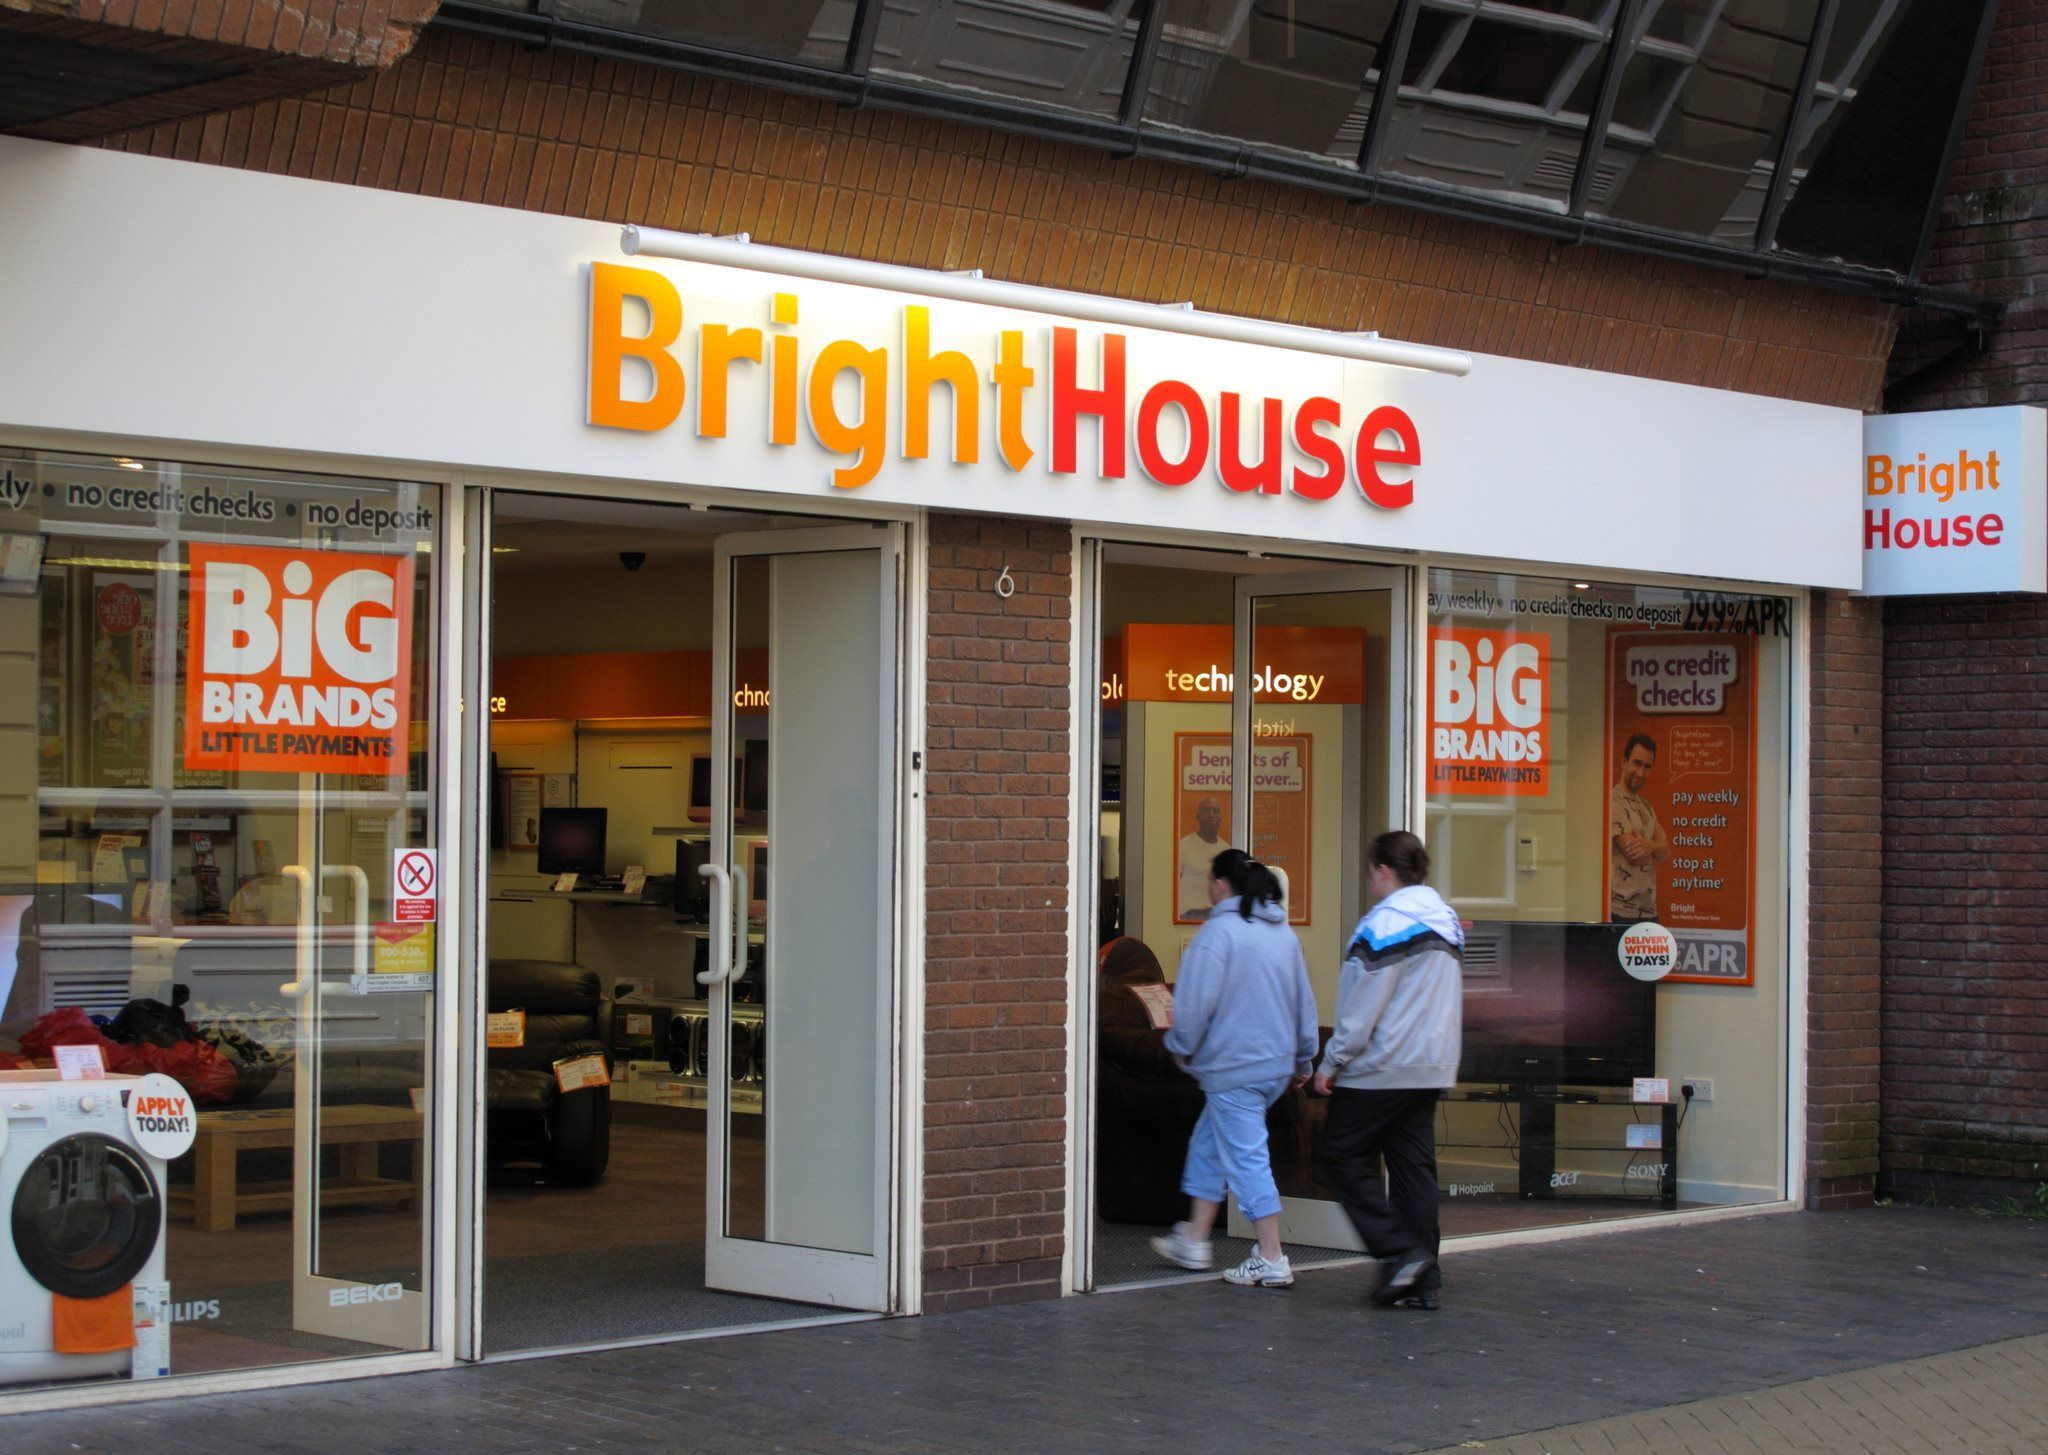 The Queen's private estate had a very small investment in the retailer BrightHouse